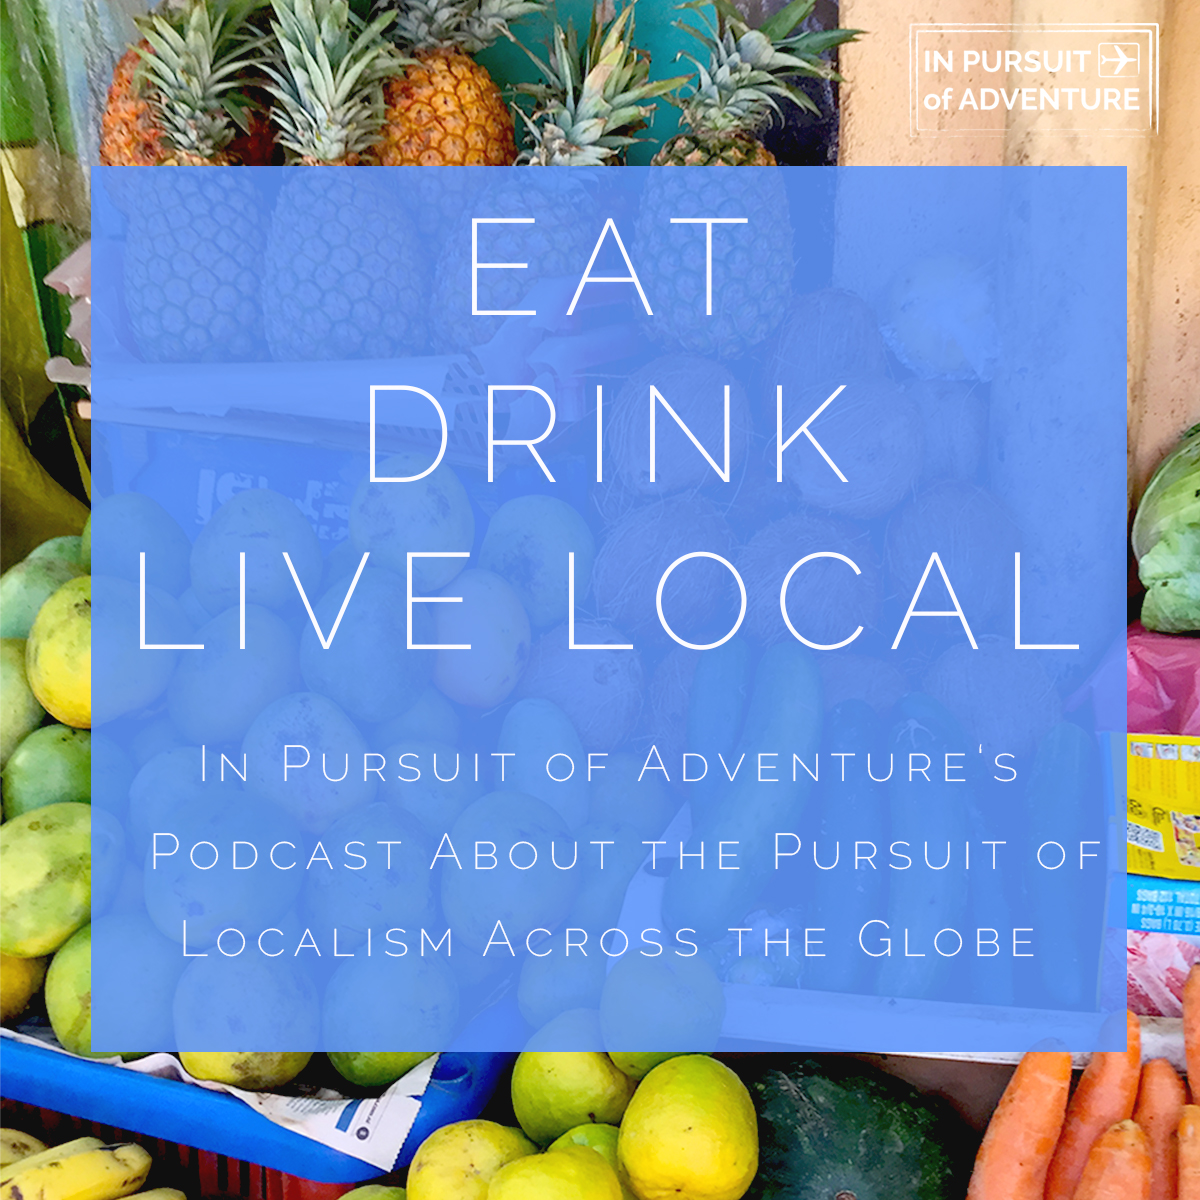 Season One Episode One - Introduction to Eat Drink Live Local